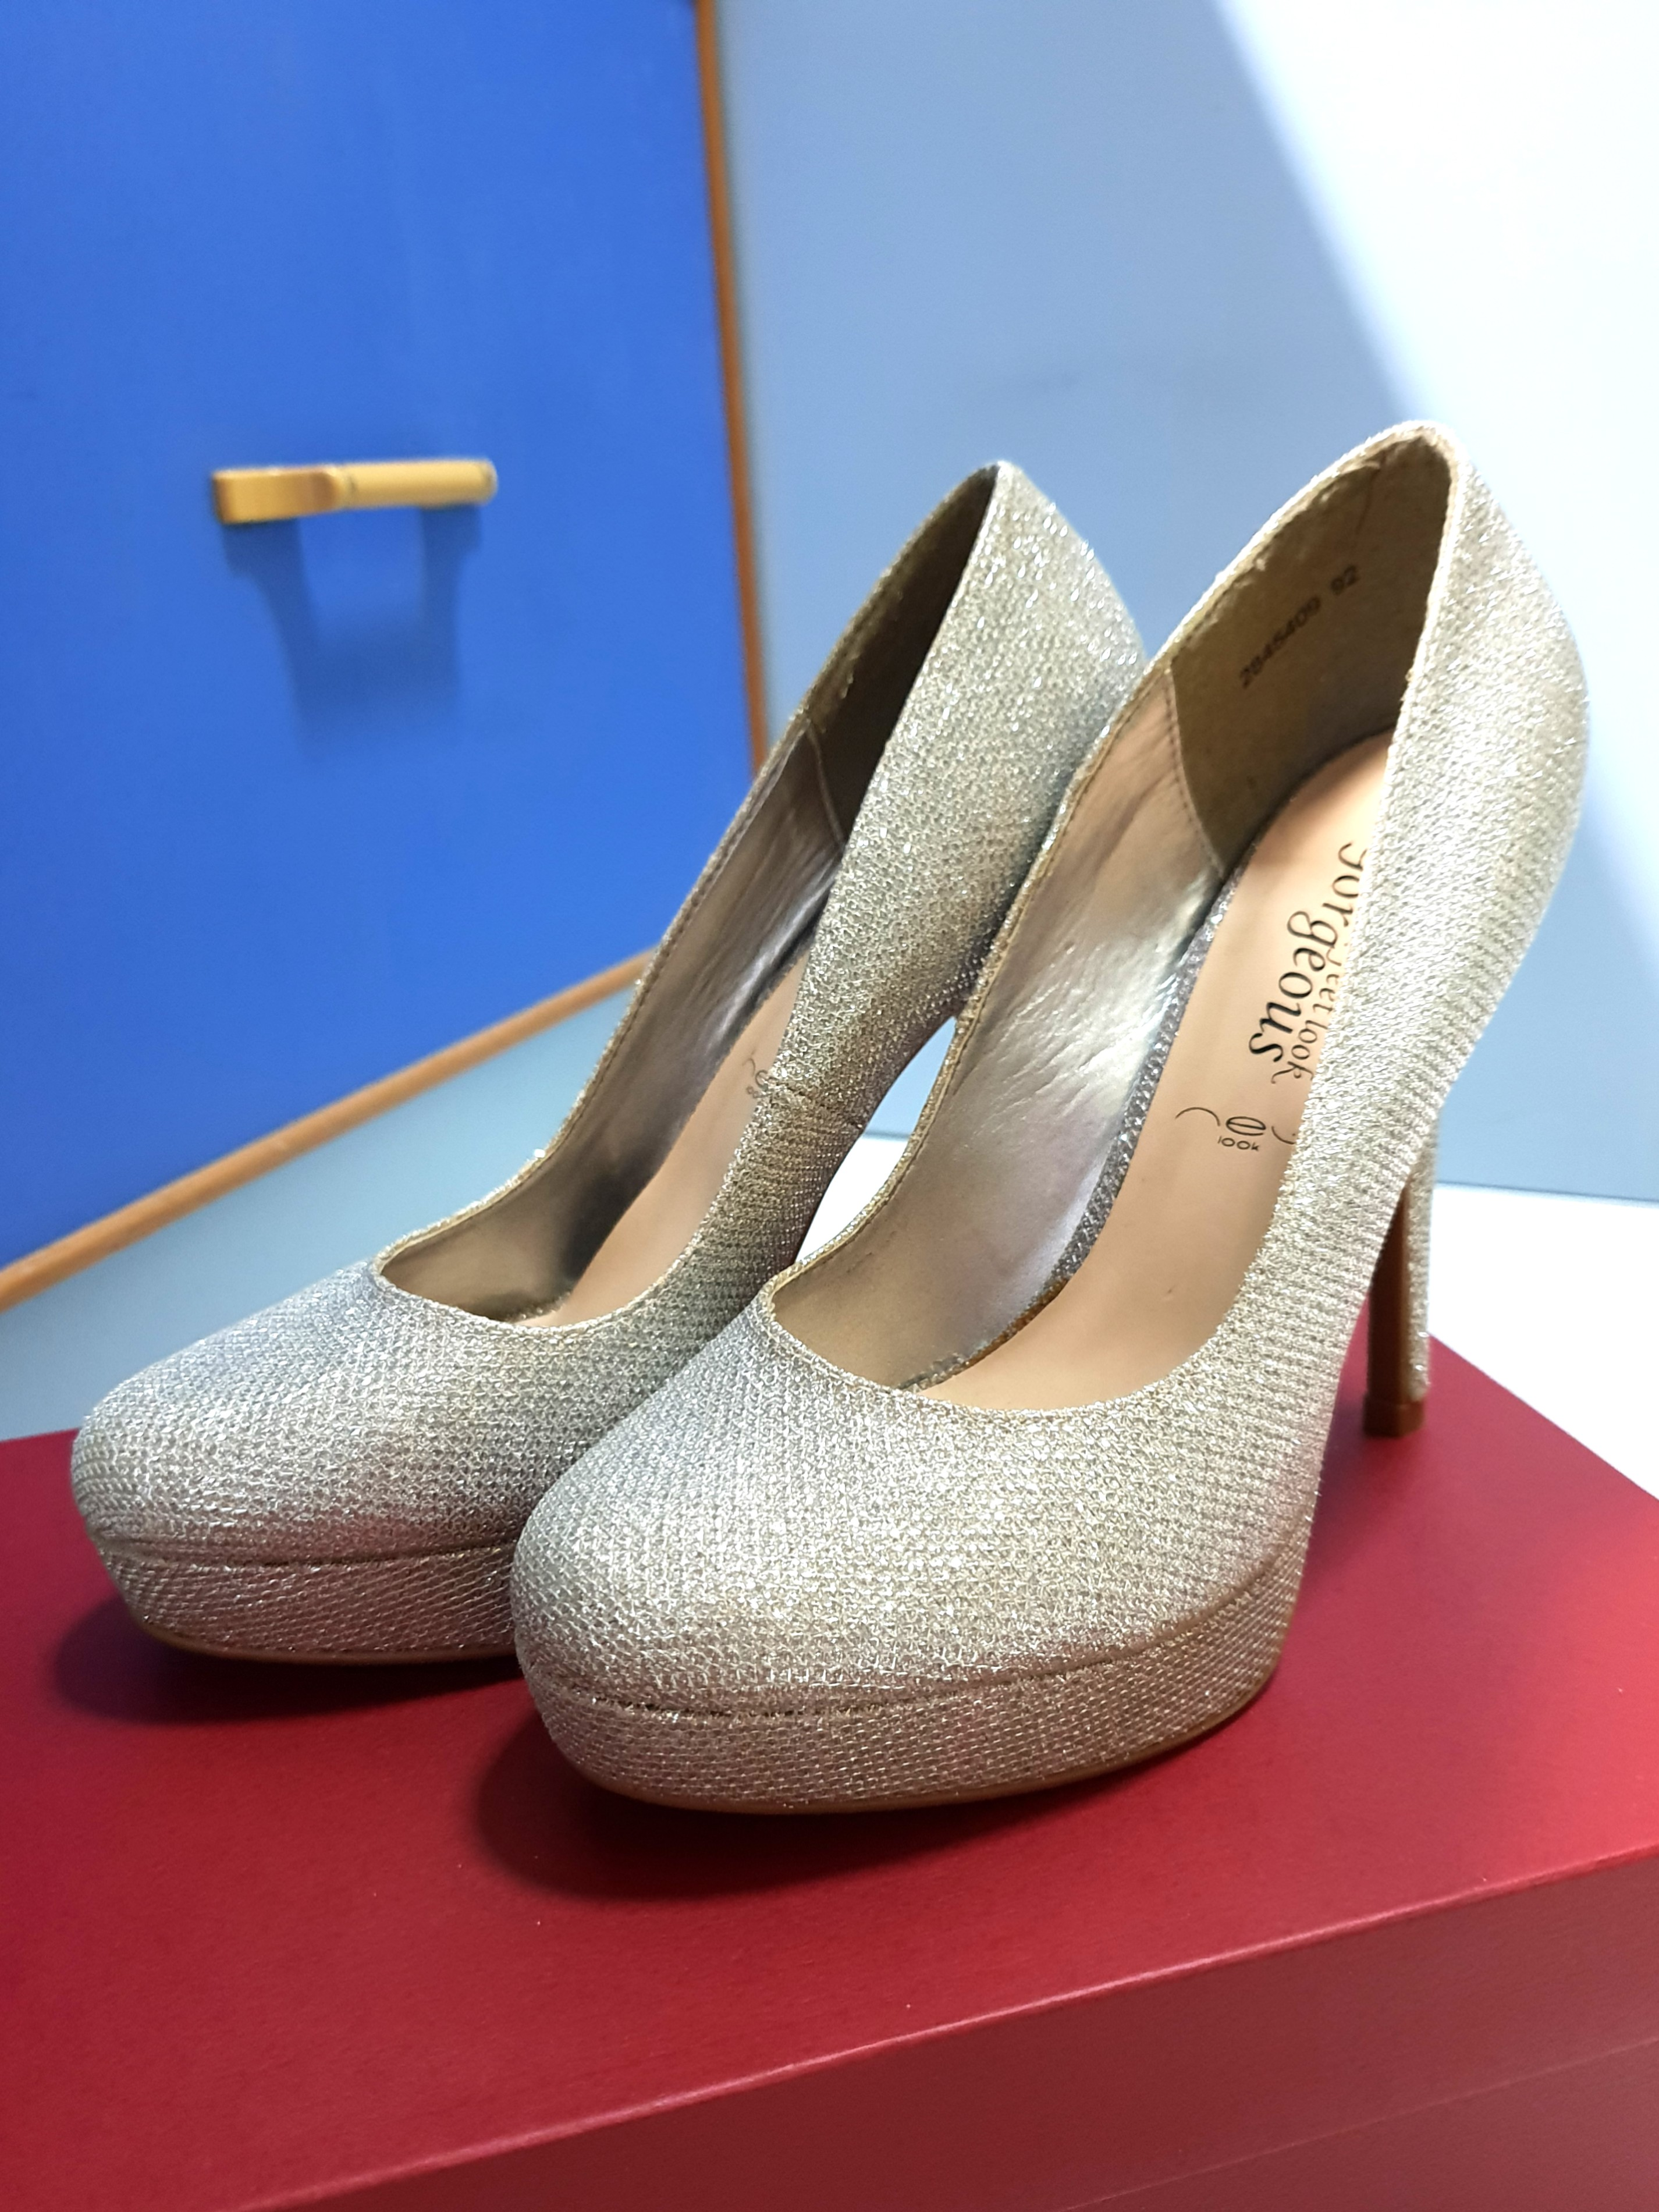 a27bcdb73 Neulook Silver Blink Heels, Women's Fashion, Shoes, Heels on Carousell